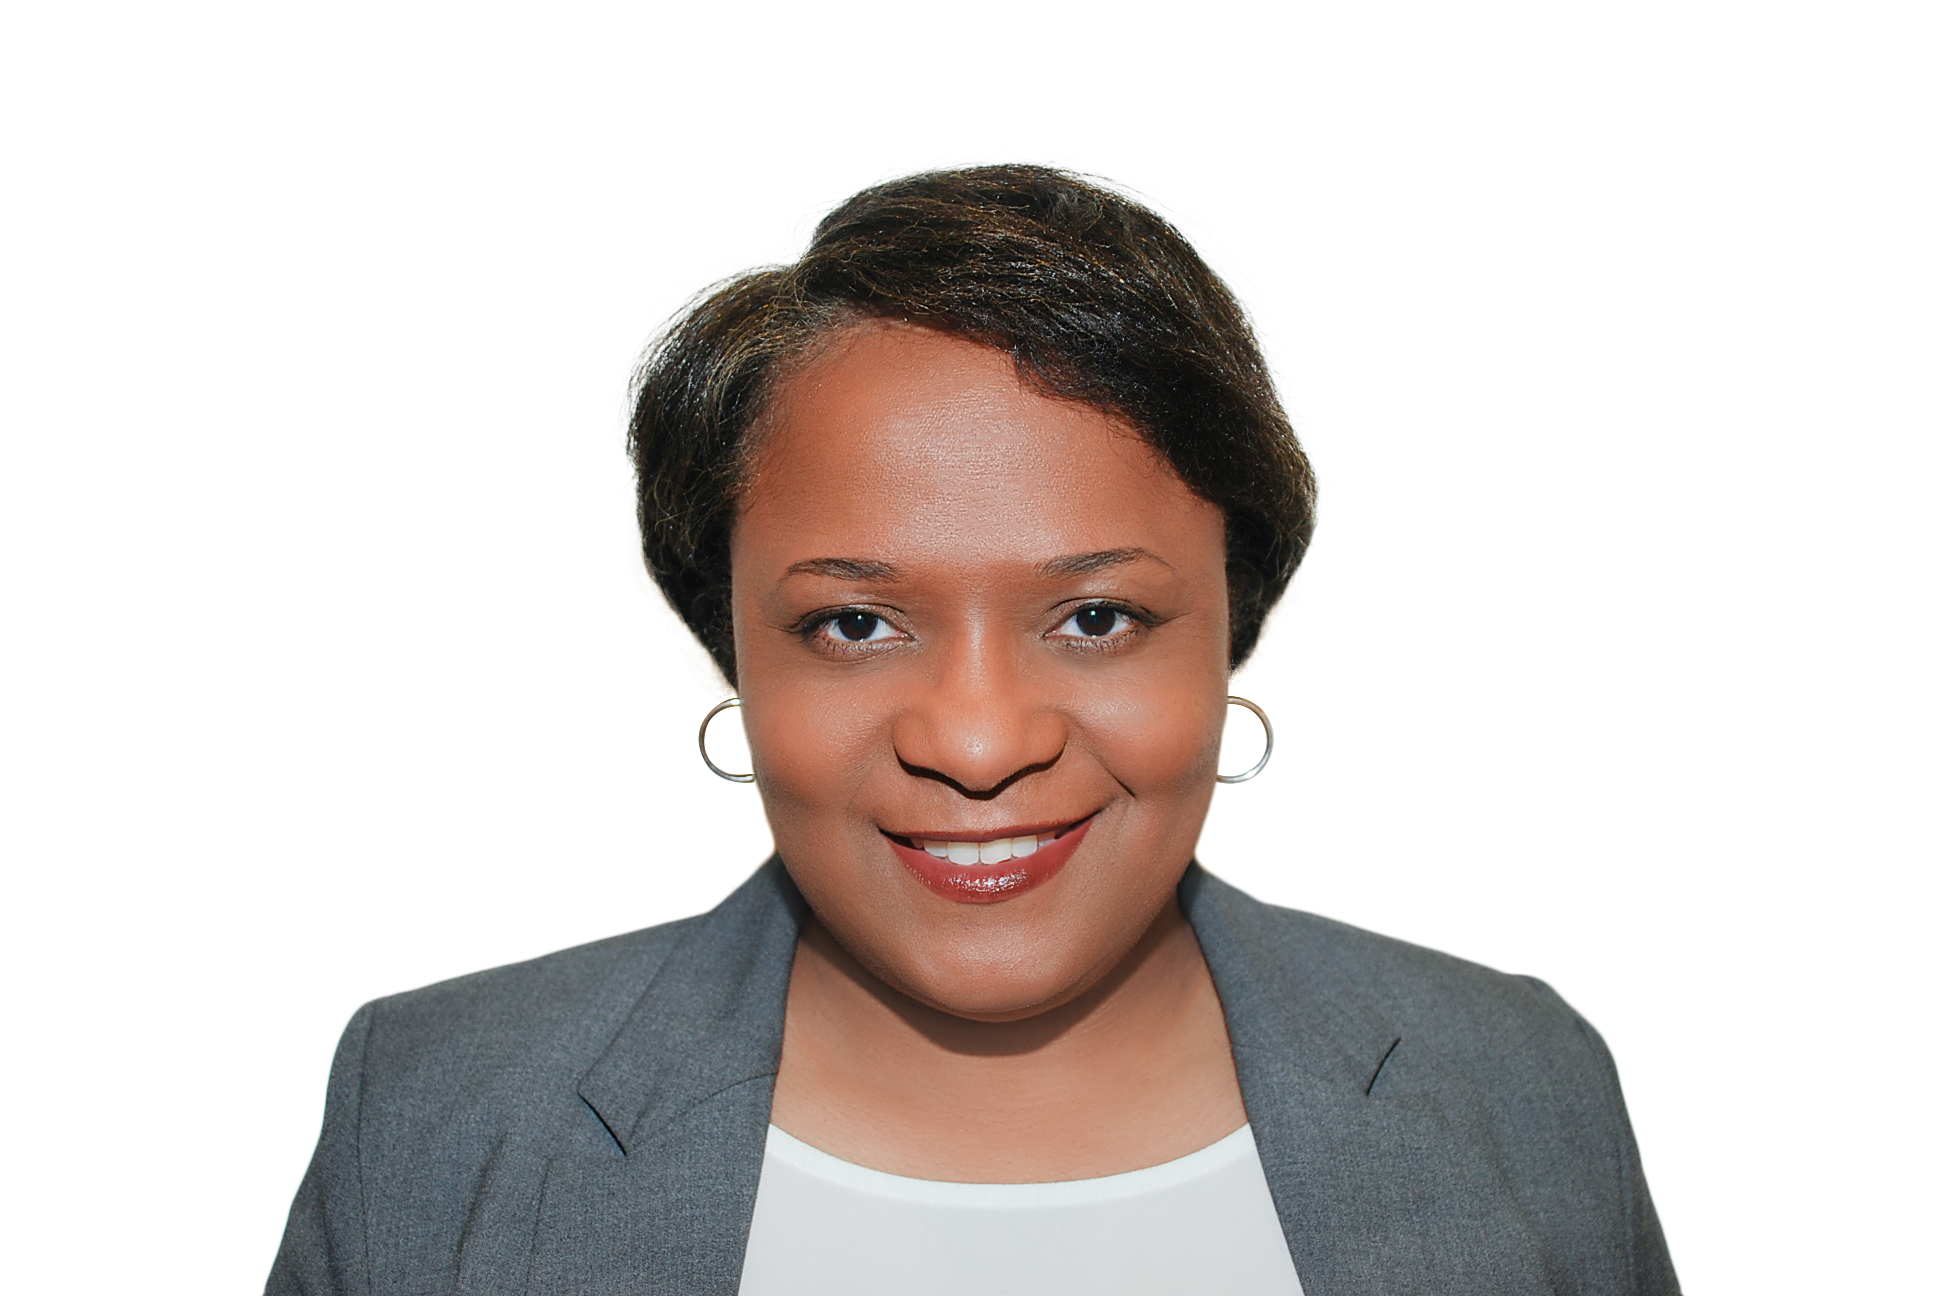 Desiree T Washignton, Candidate for Los Angeles County Supervisor